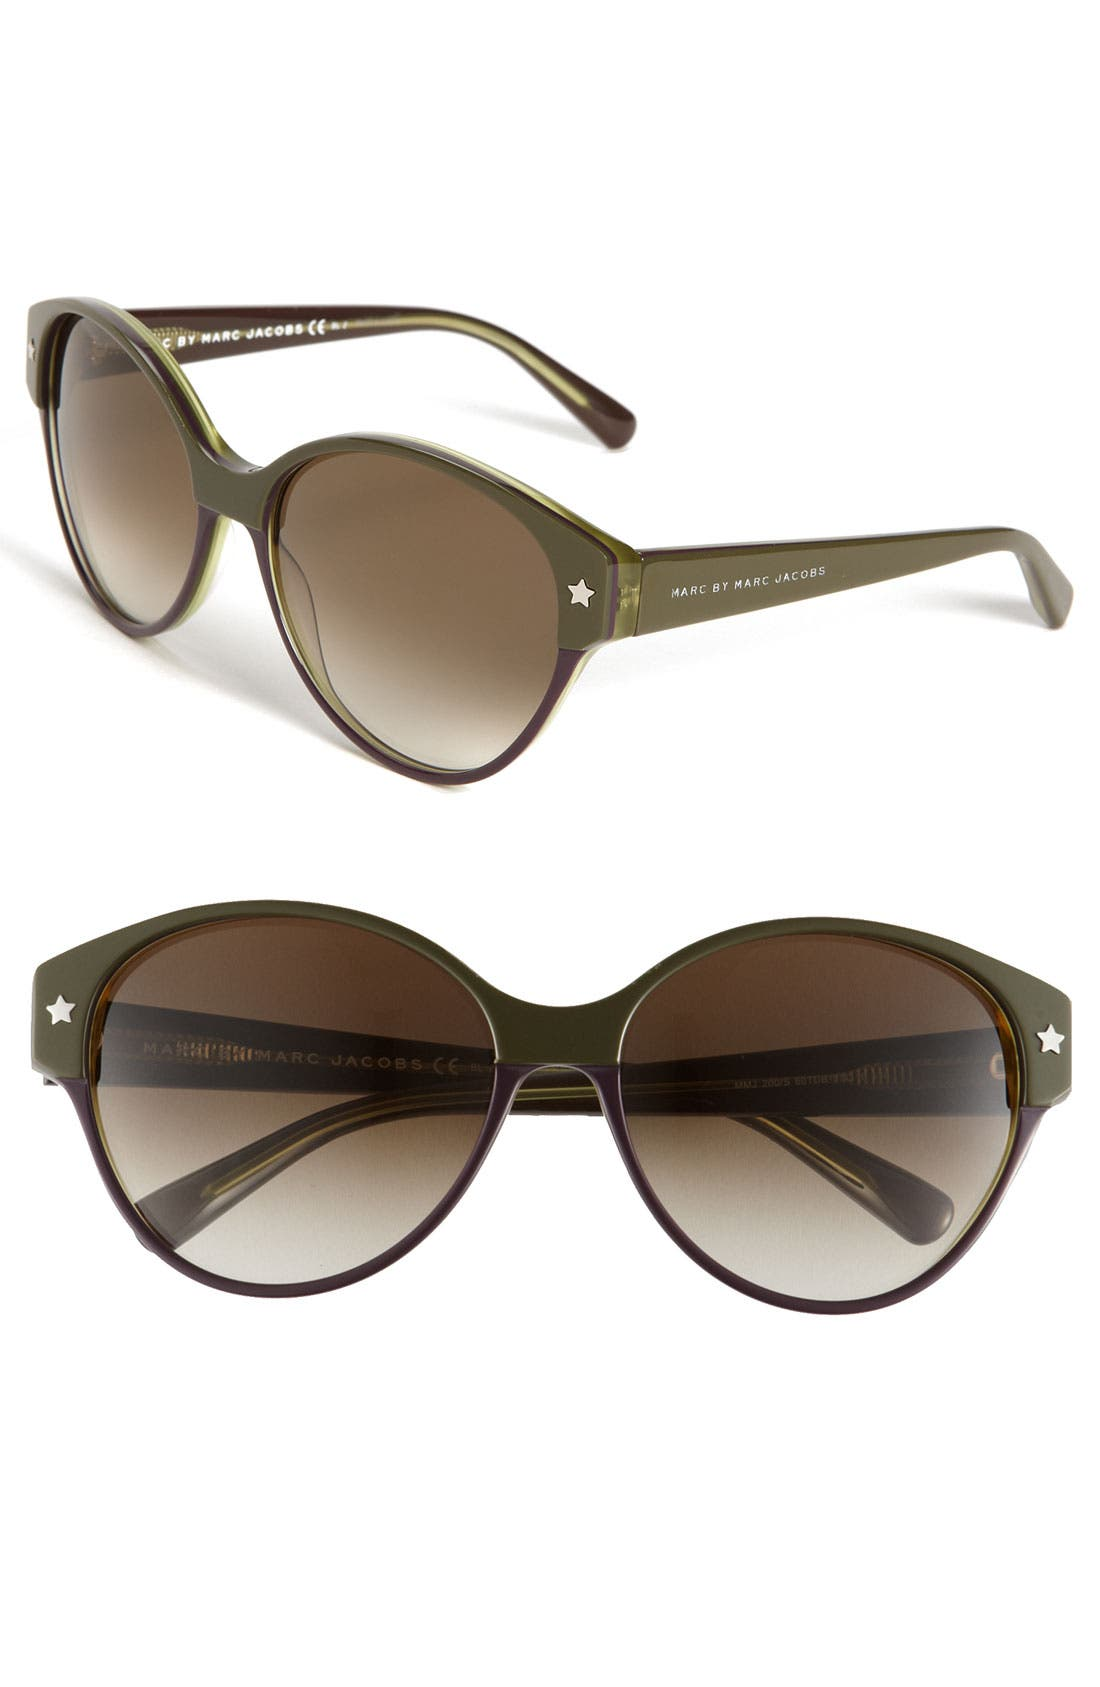 Alternate Image 1 Selected - MARC BY MARC JACOBS 'International Collection' 57mm Sunglasses